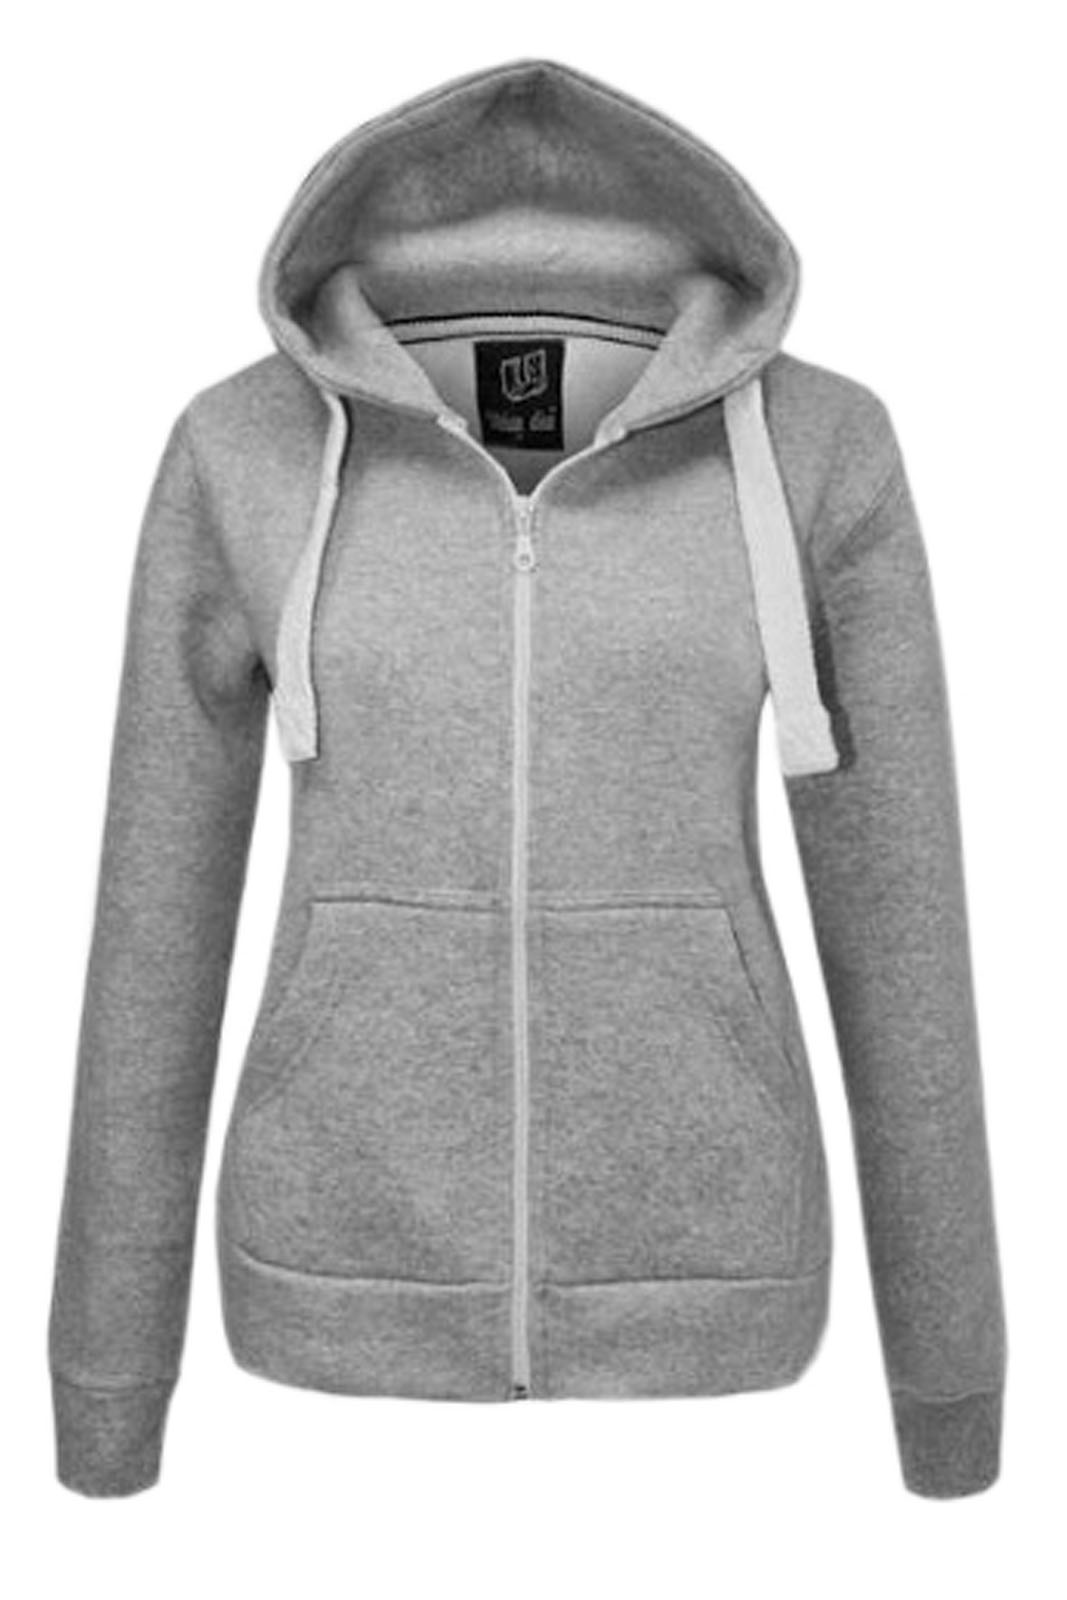 NEW WOMENS PLAIN ZIP HOODIE SWEATSHIRT LADIES FLEECE HOODED JACKET ...